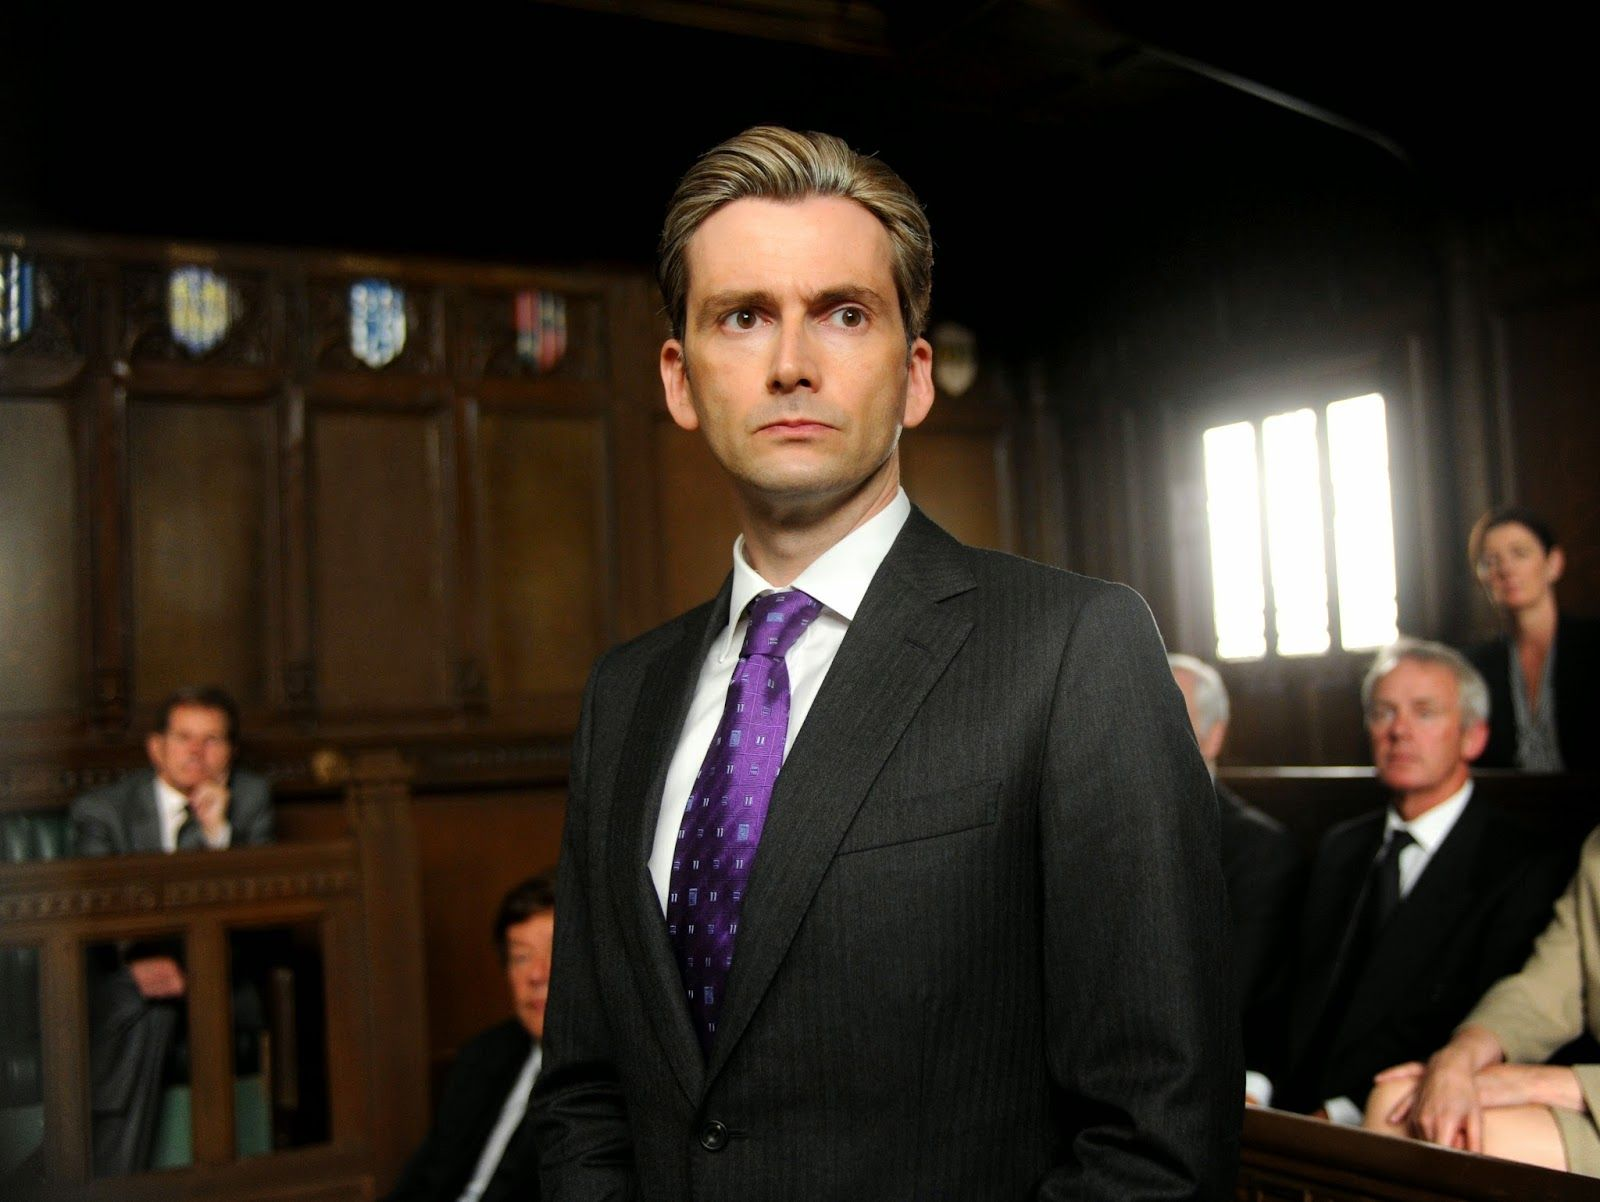 PHOTOS David Tennant In The Politician's Husband